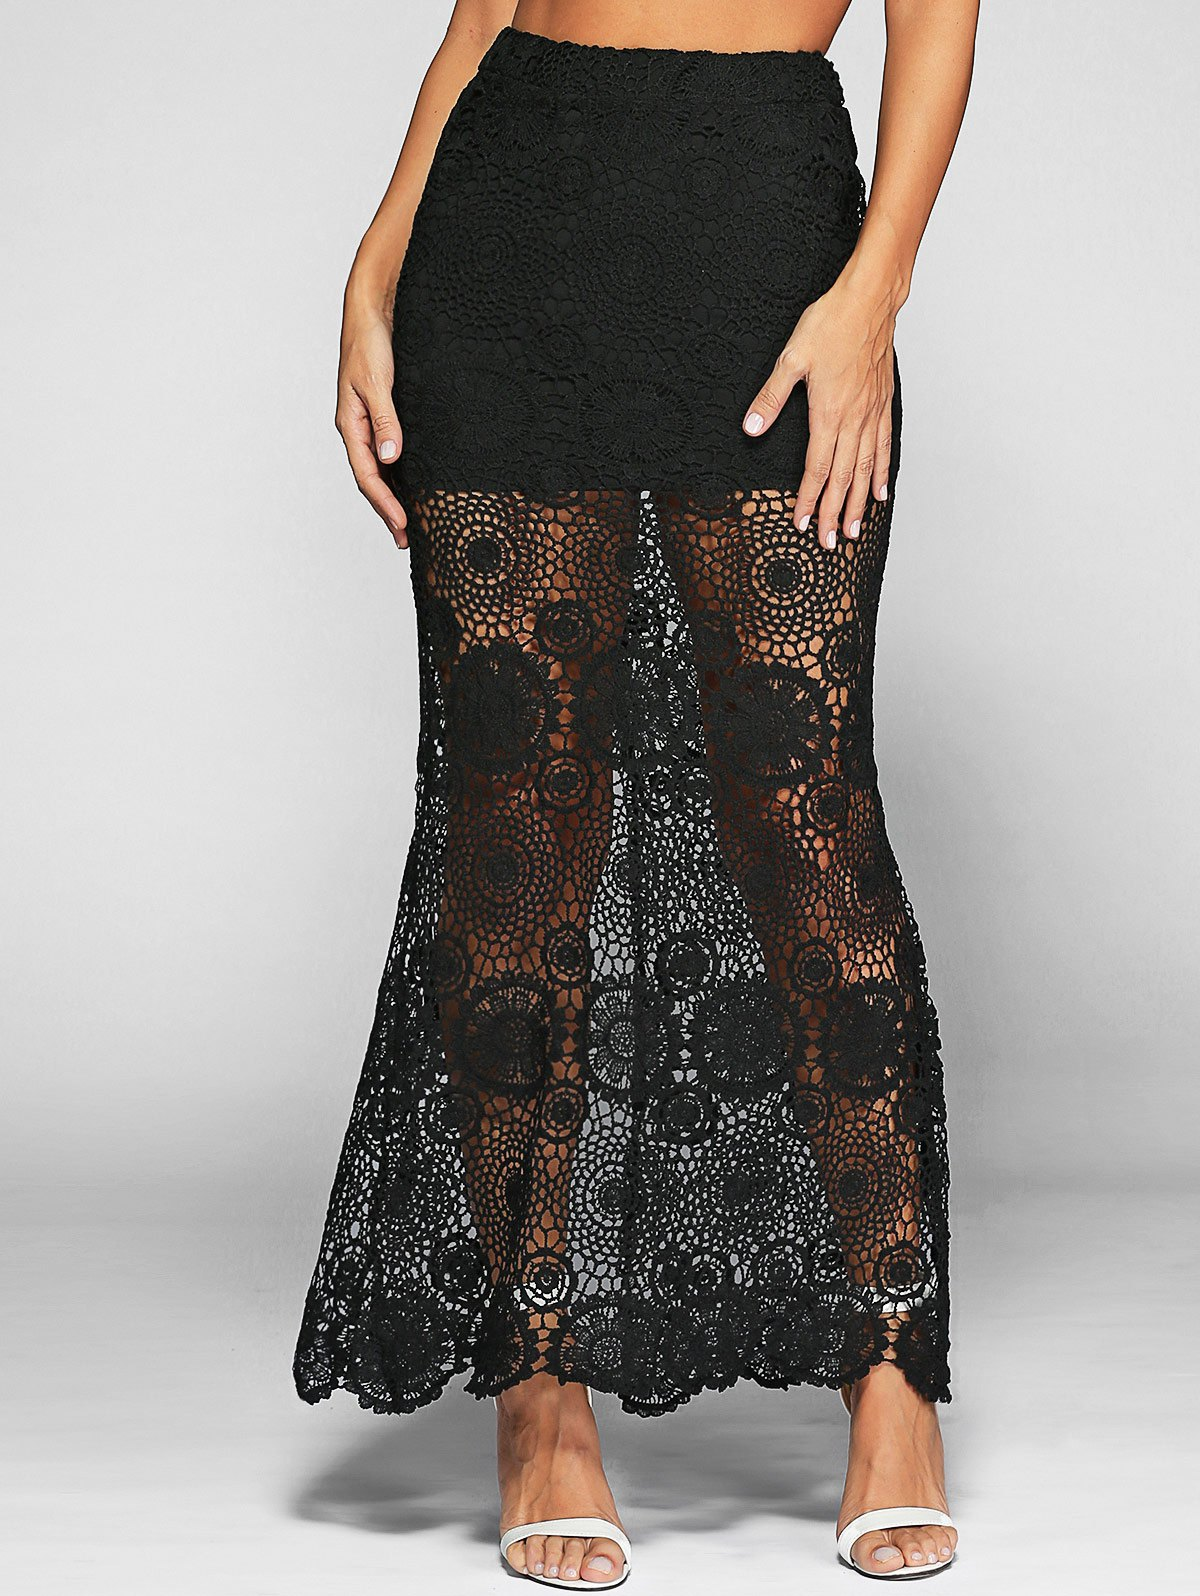 See-Through Lace Skirt